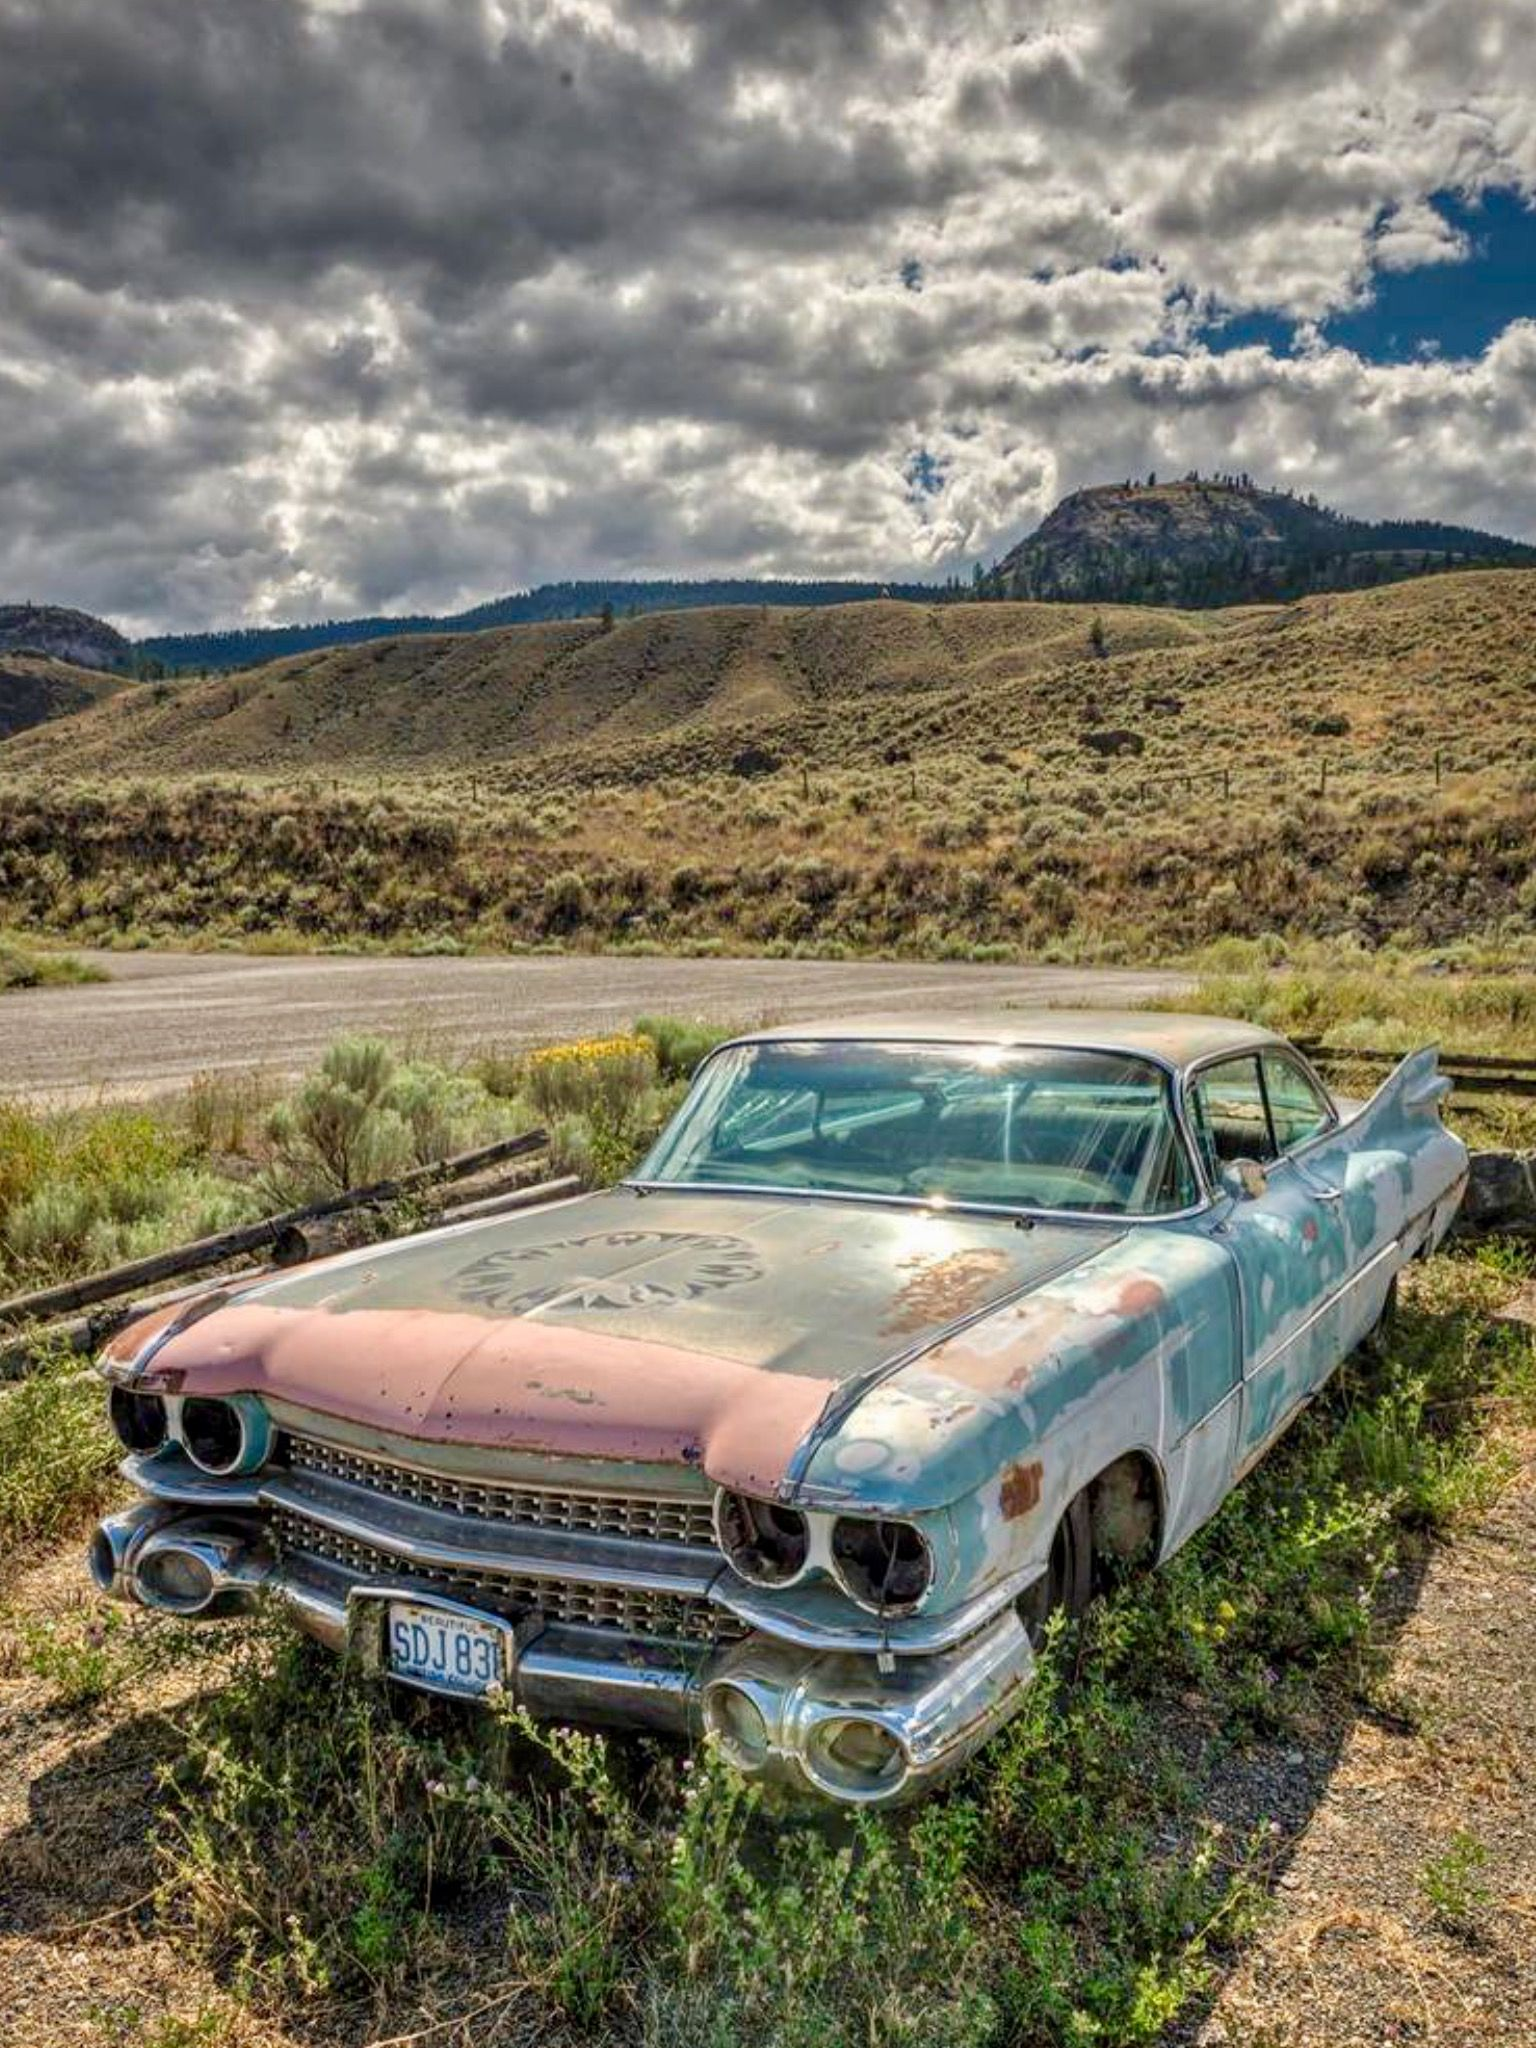 Abandoned Car Source Facebook Com With Images Abandoned Cars